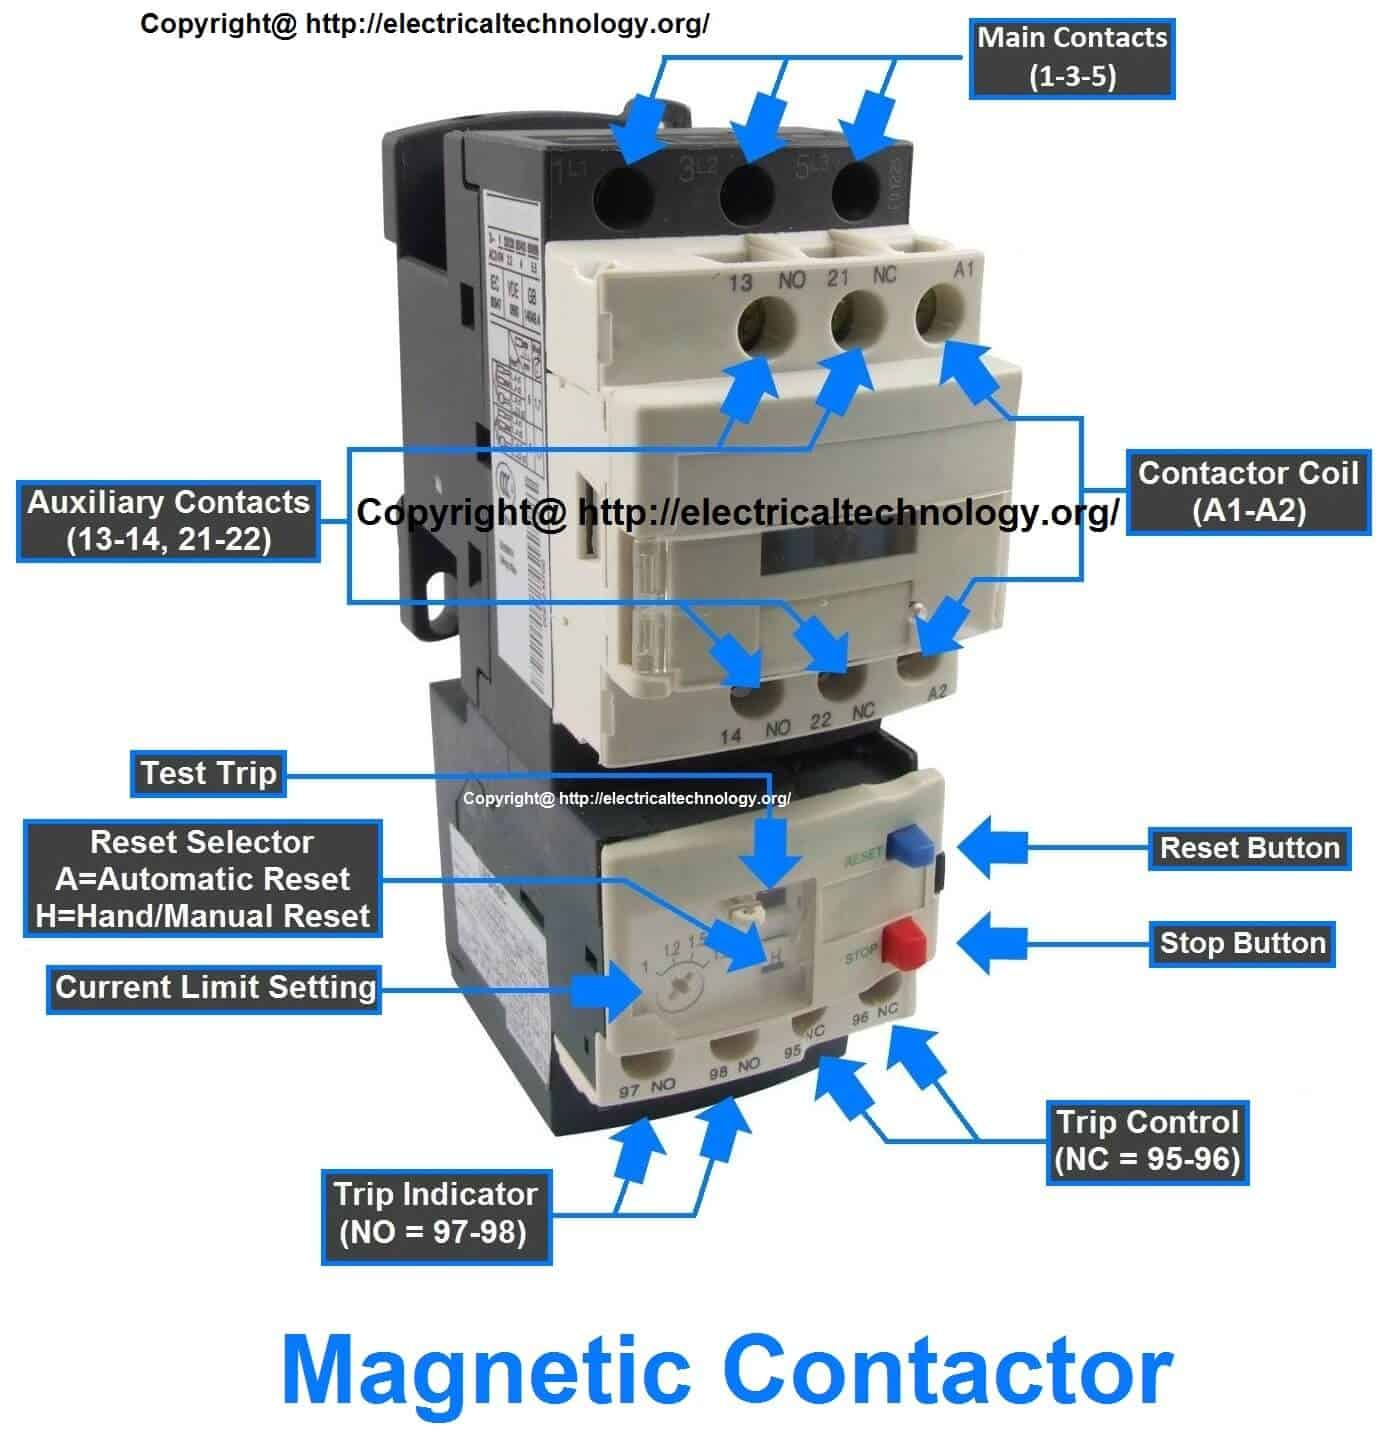 wiring diagram schneider contactor on wiring images free download 3 Pole Contactor Wiring Diagram wiring diagram schneider contactor on wiring diagram schneider contactor 1 magnetic contactor diagram start stop switch wiring 3 pole contactor wiring diagram